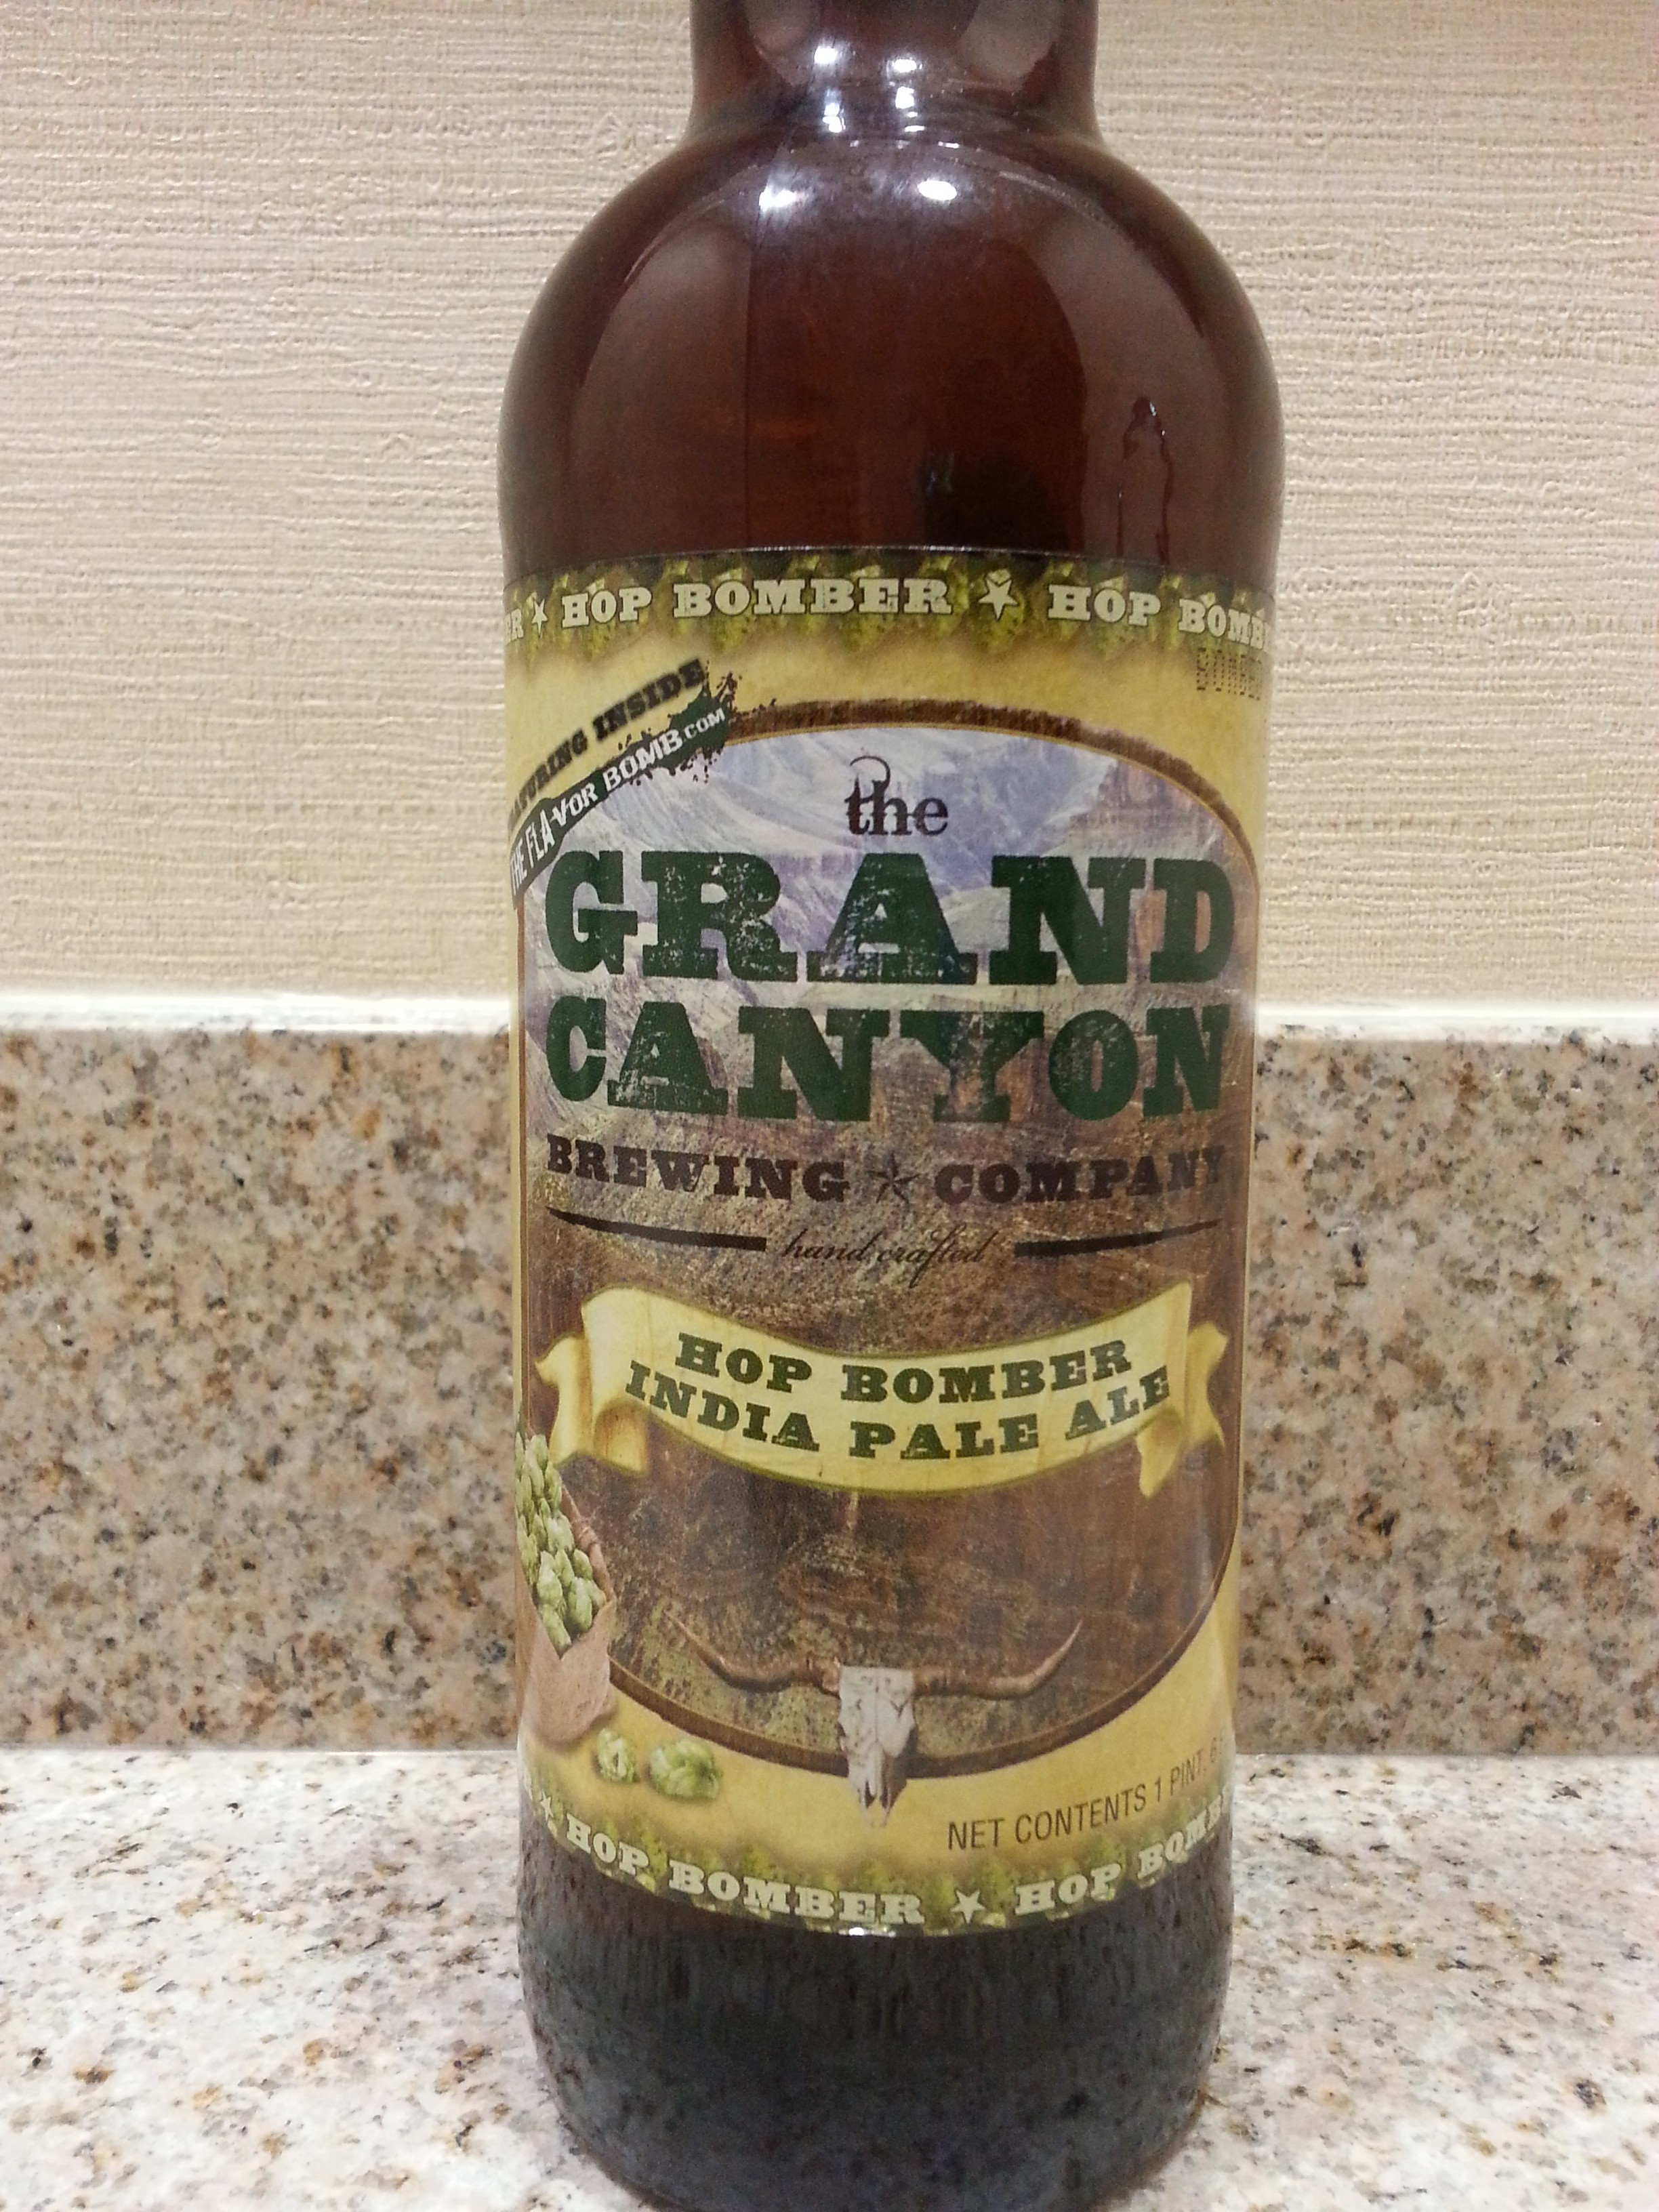 Grand Canyon Hop Bomber India Pale Ale